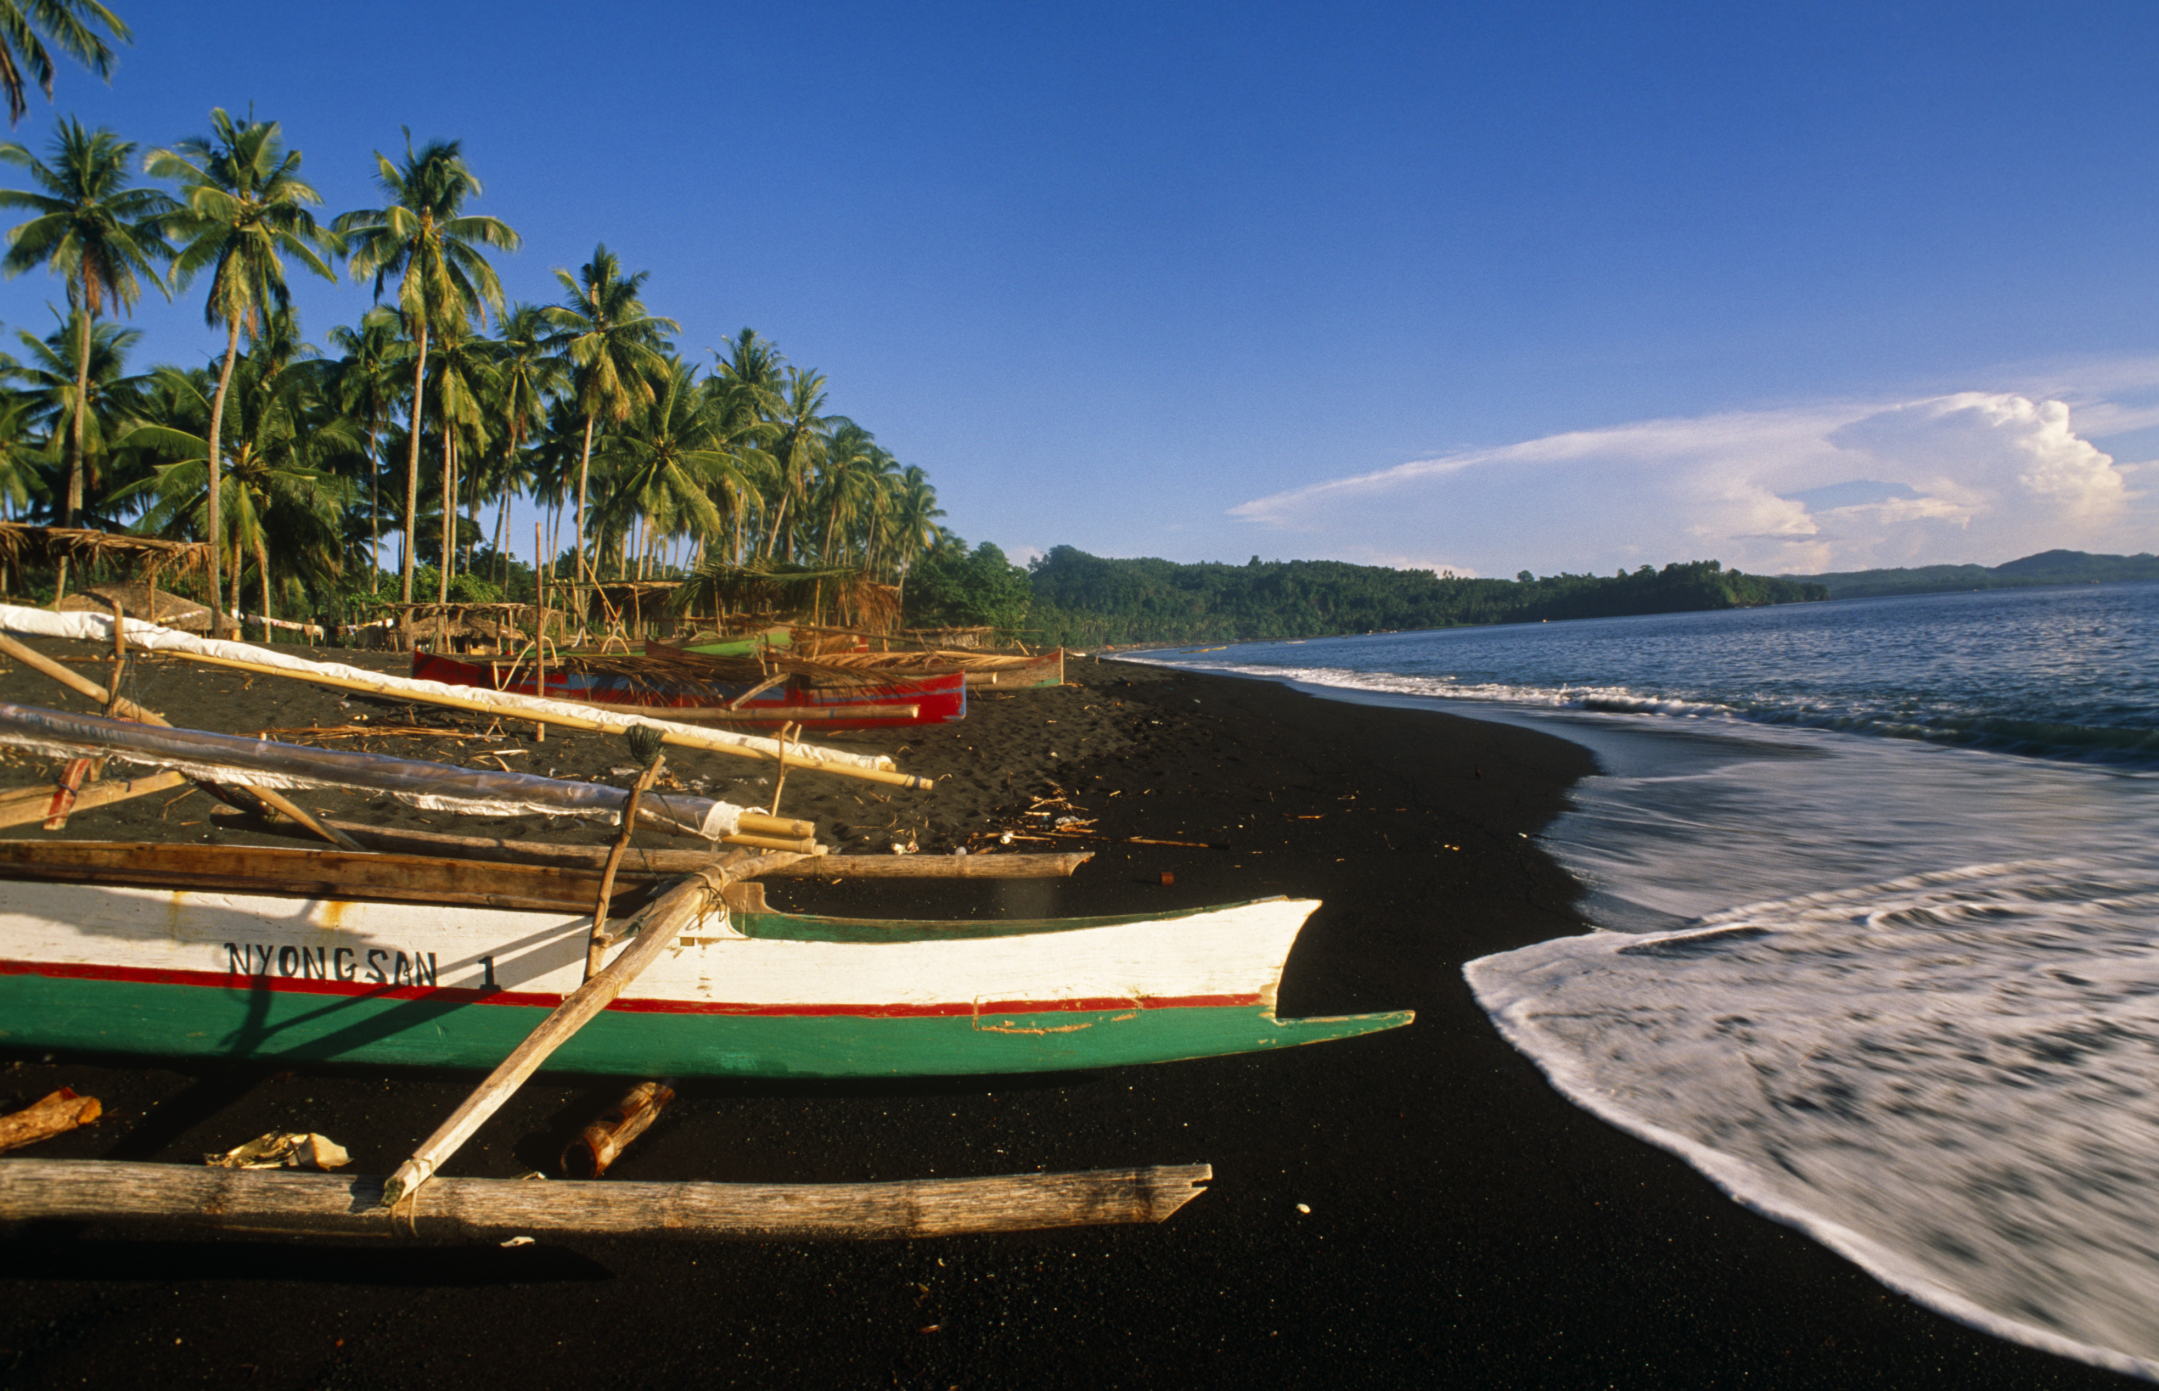 Small Bathroom Ideas 20 Of The Best 20 Best Black Sand Beaches In The World Volcanic Sand